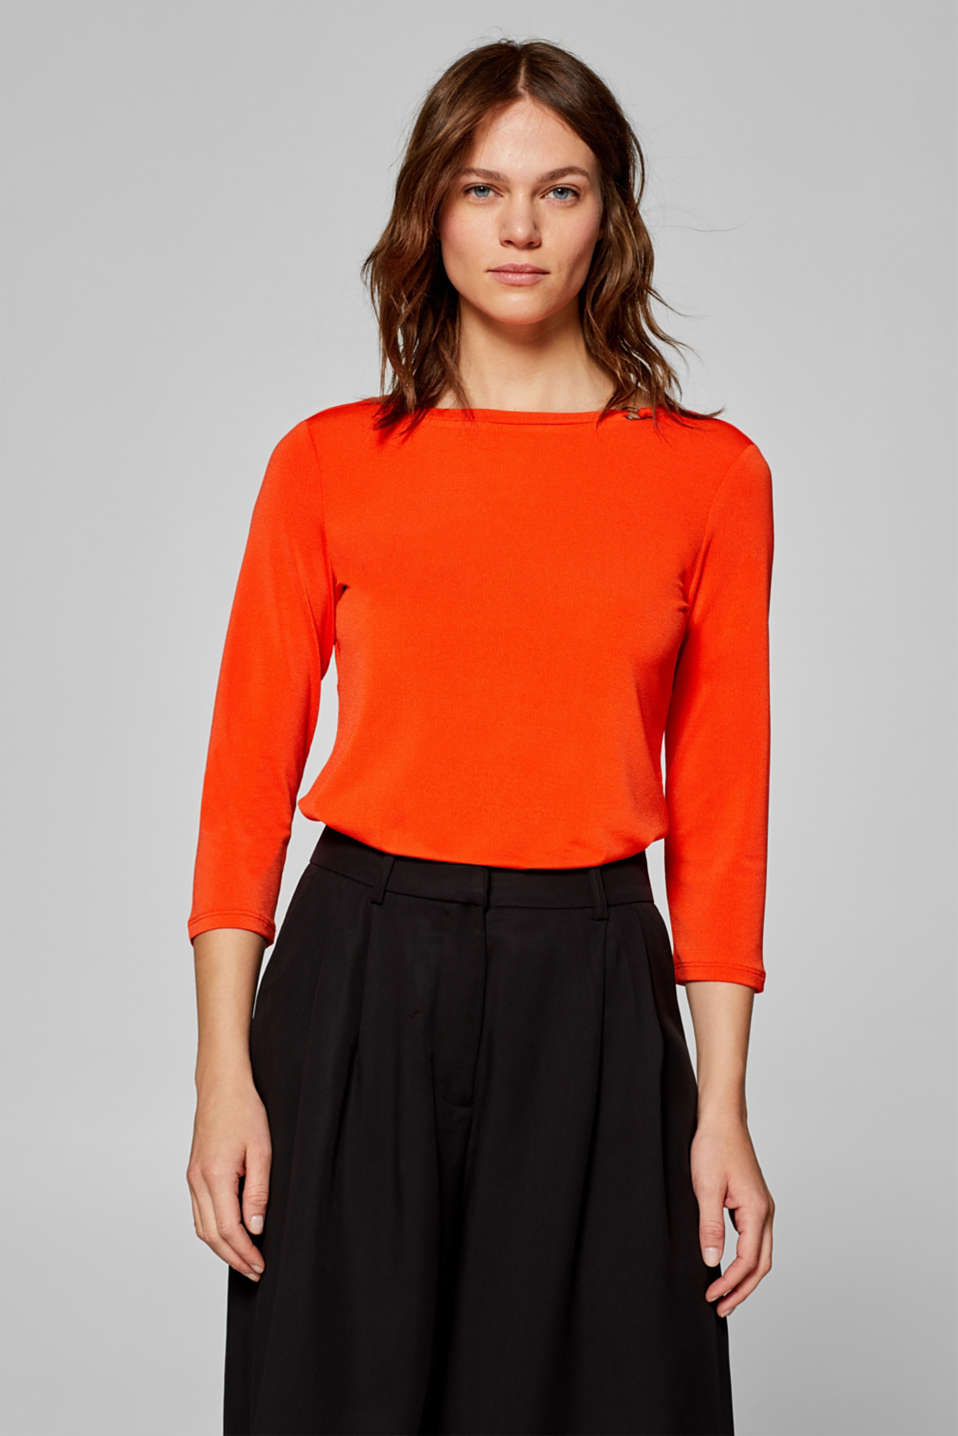 Esprit - Crêpe top with a decorative ring and stretch for comfort